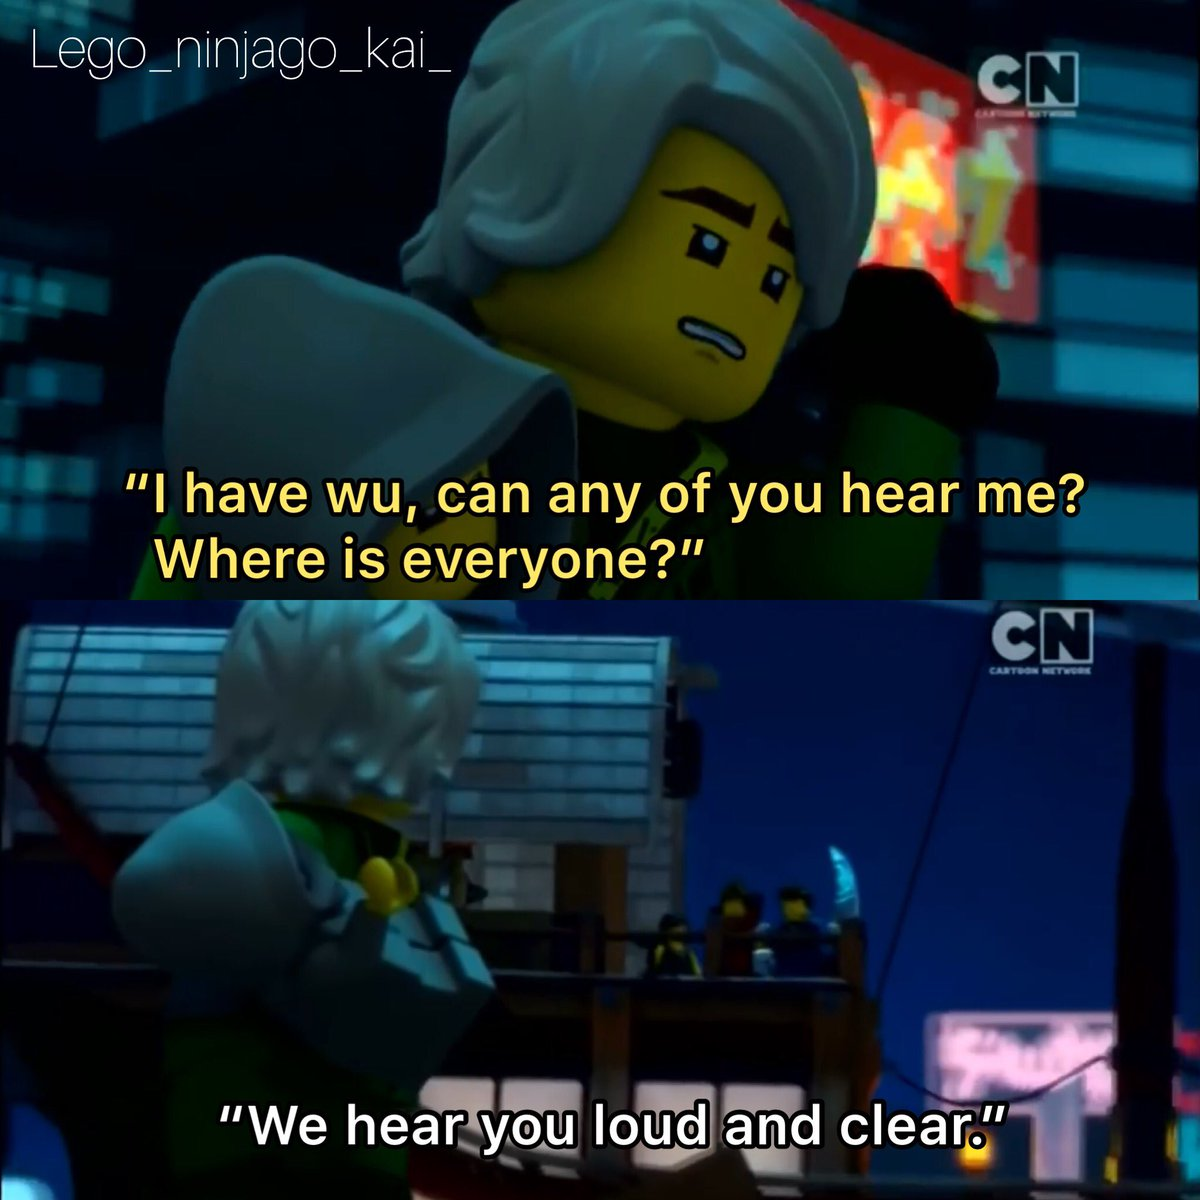 I'm so excited and curious with how S9 will go for Lloyd.  #LEGO #Ninjago #LEGOninjago #Lloyd #Kai #Jay #Zane #Cole #BABY #WU #Cant #Wait #He #Think #His #Friends #Are #Dead #This #Is #Not #Okay<br>http://pic.twitter.com/EULGtbdrnV